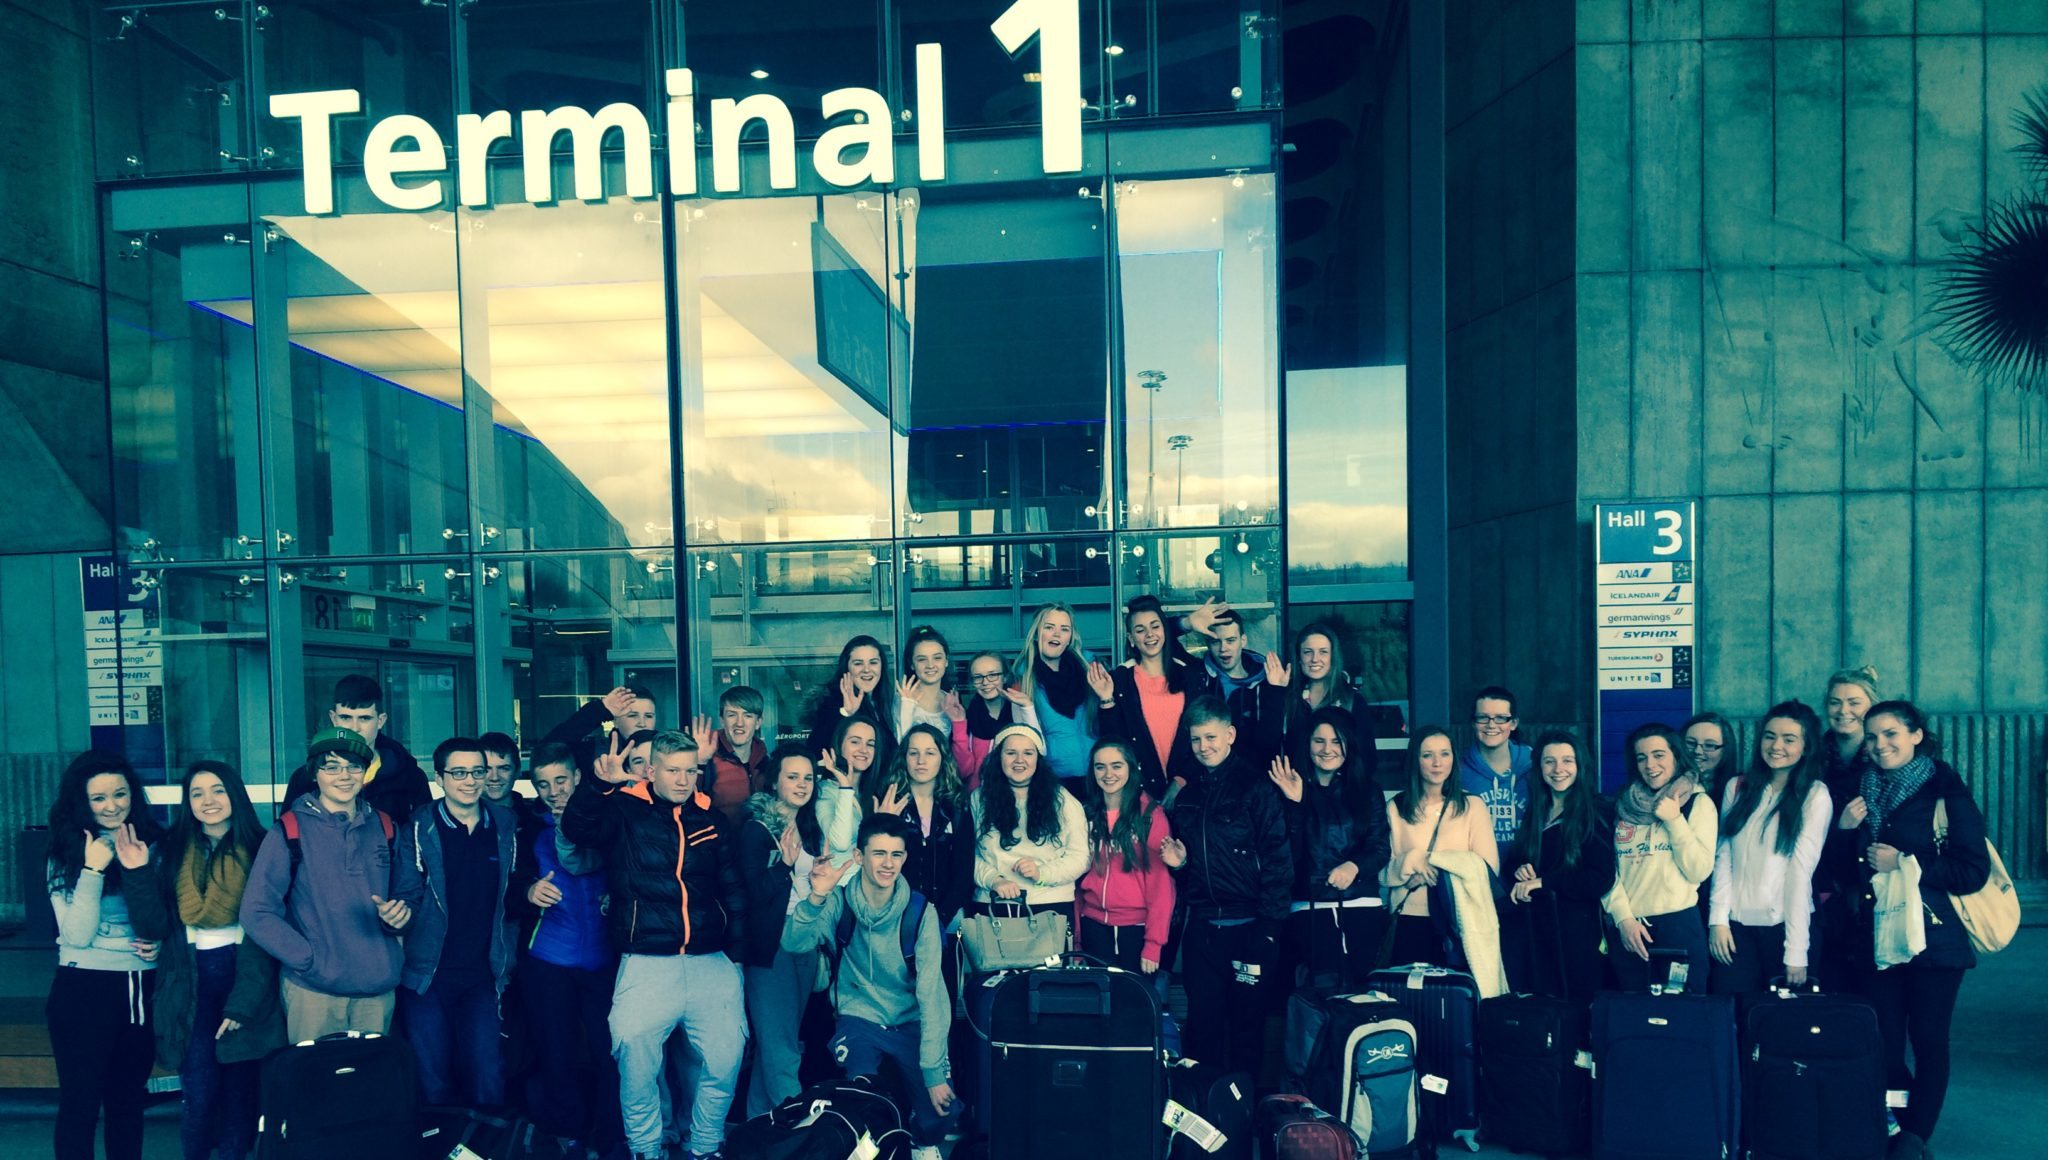 Desmond College Paris Trip 2015: The Group are Ready to Board the Plane to Paris